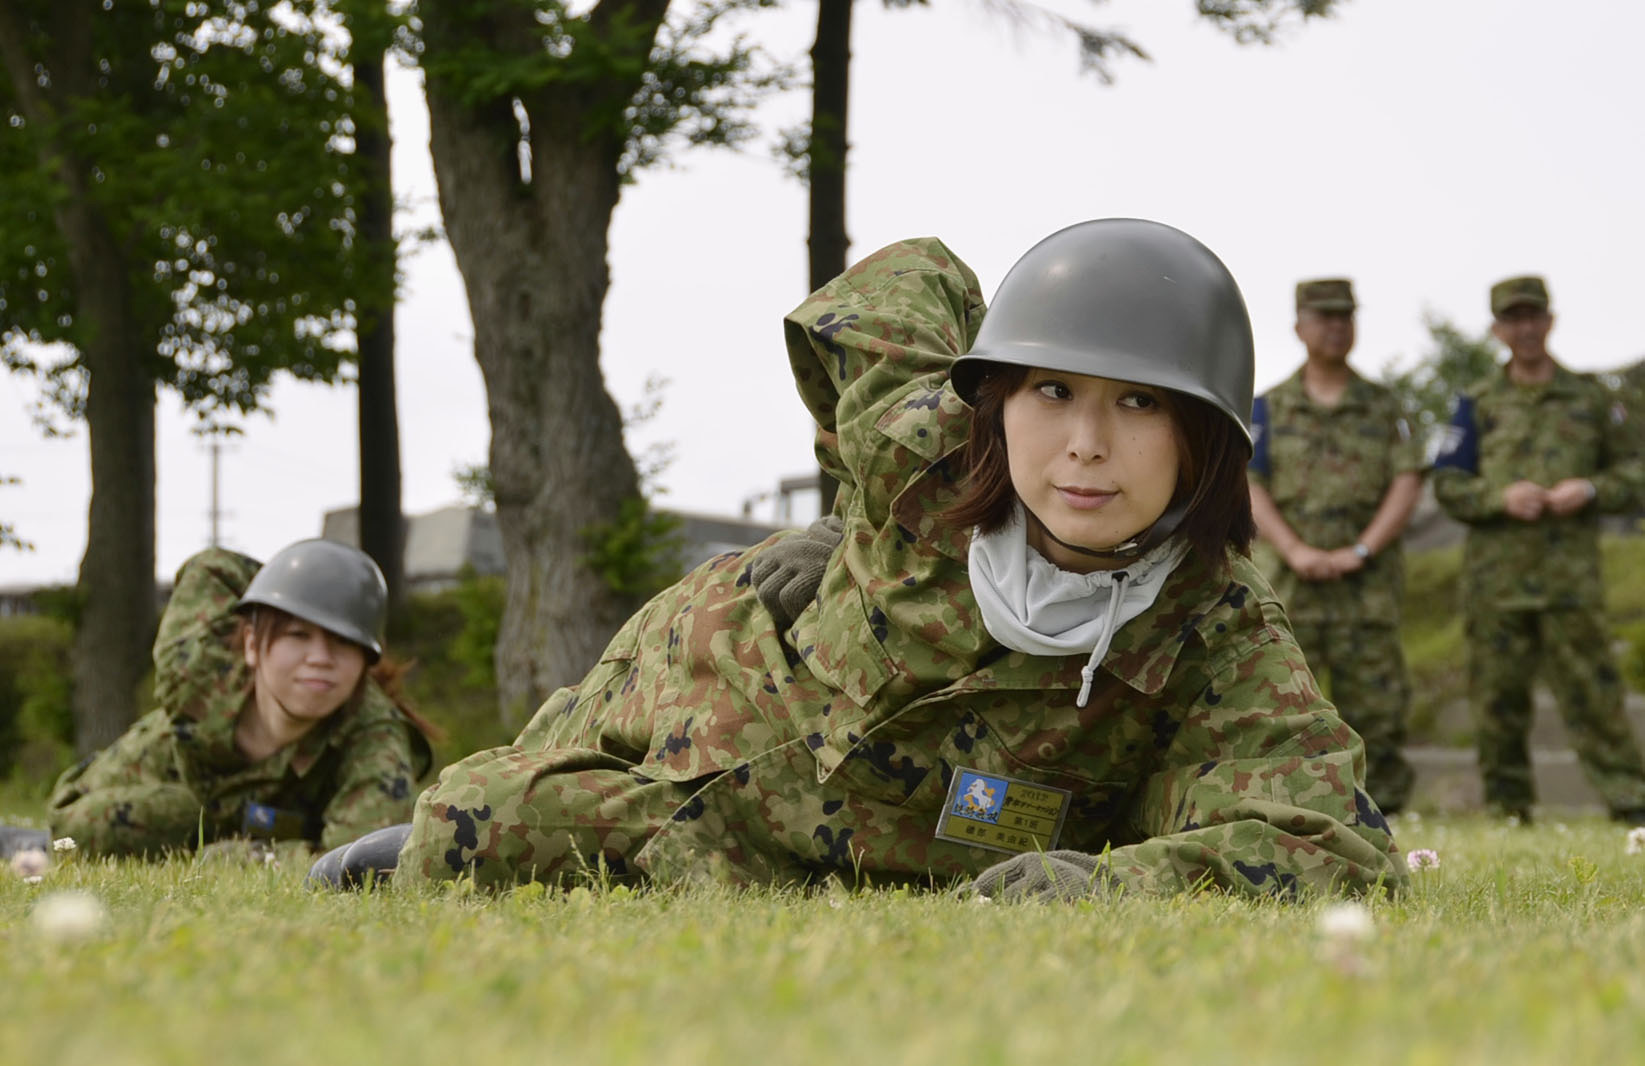 Army boot camp women